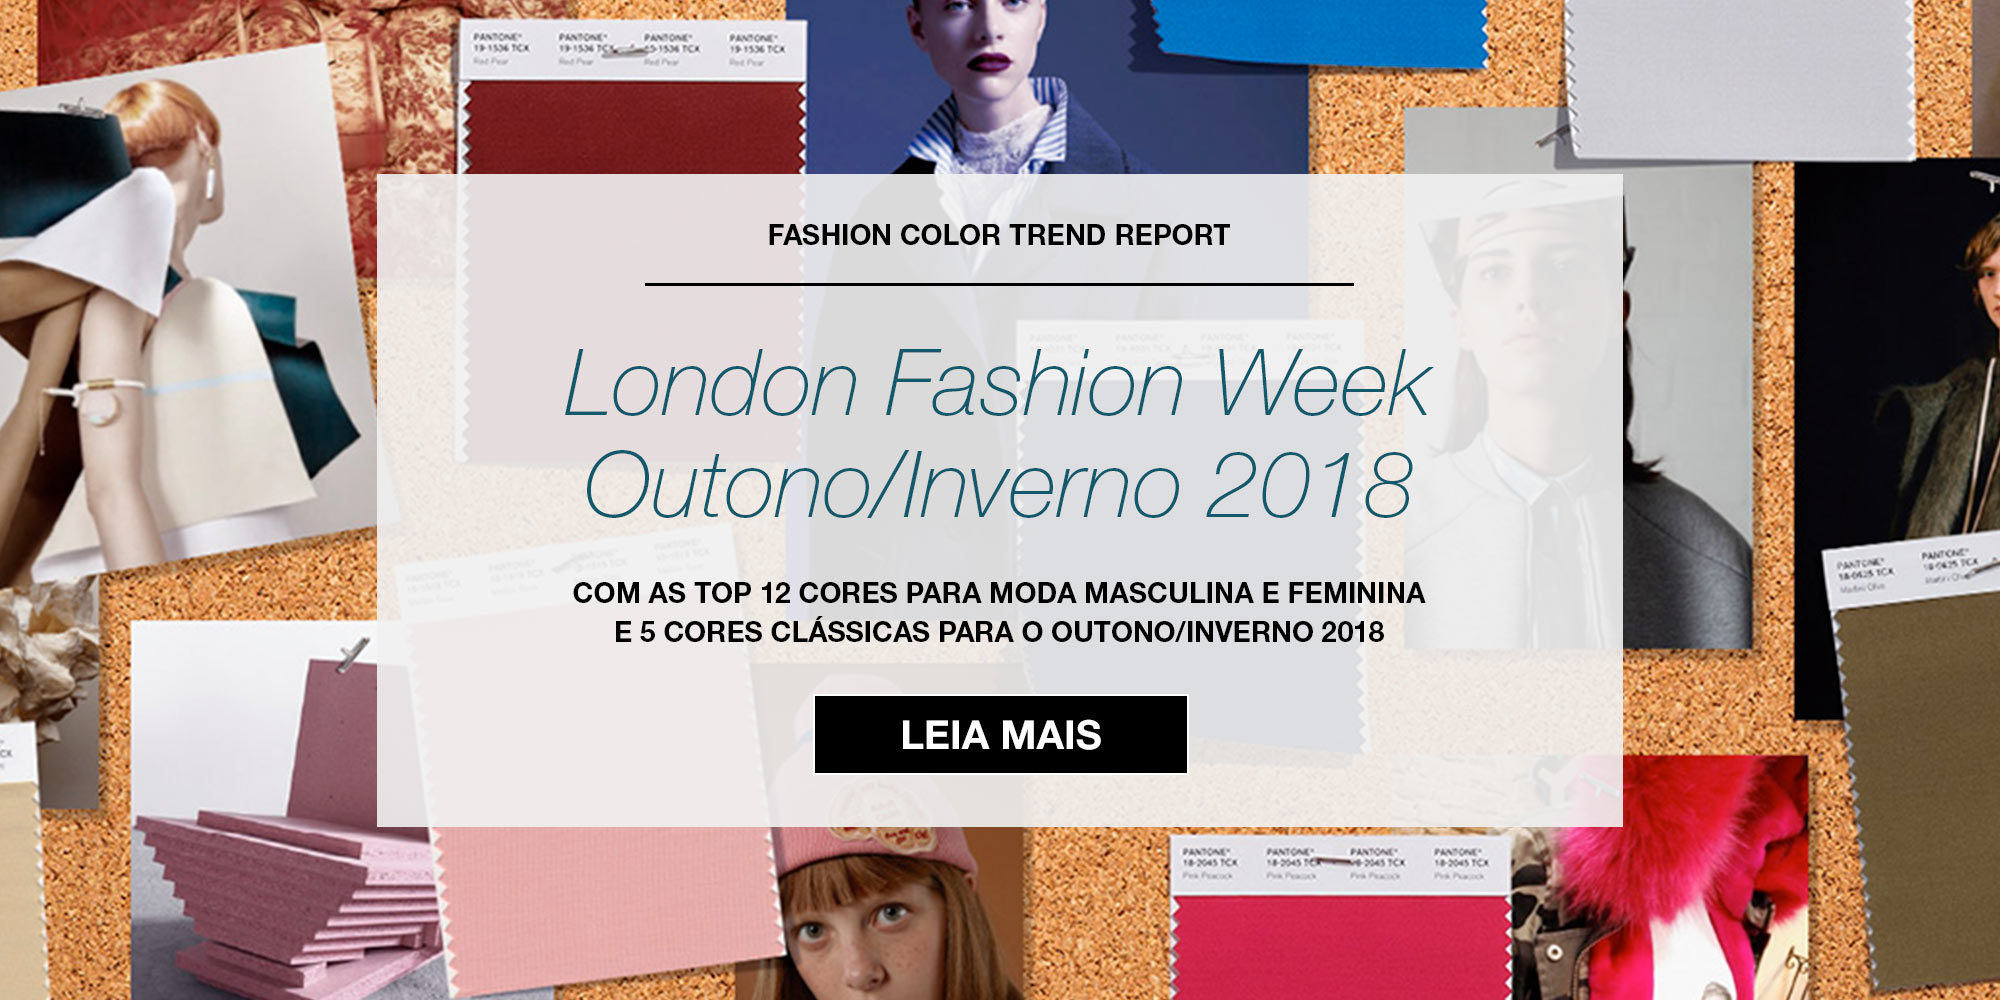 FCR - London Fashion Week Outono Inverno 2018